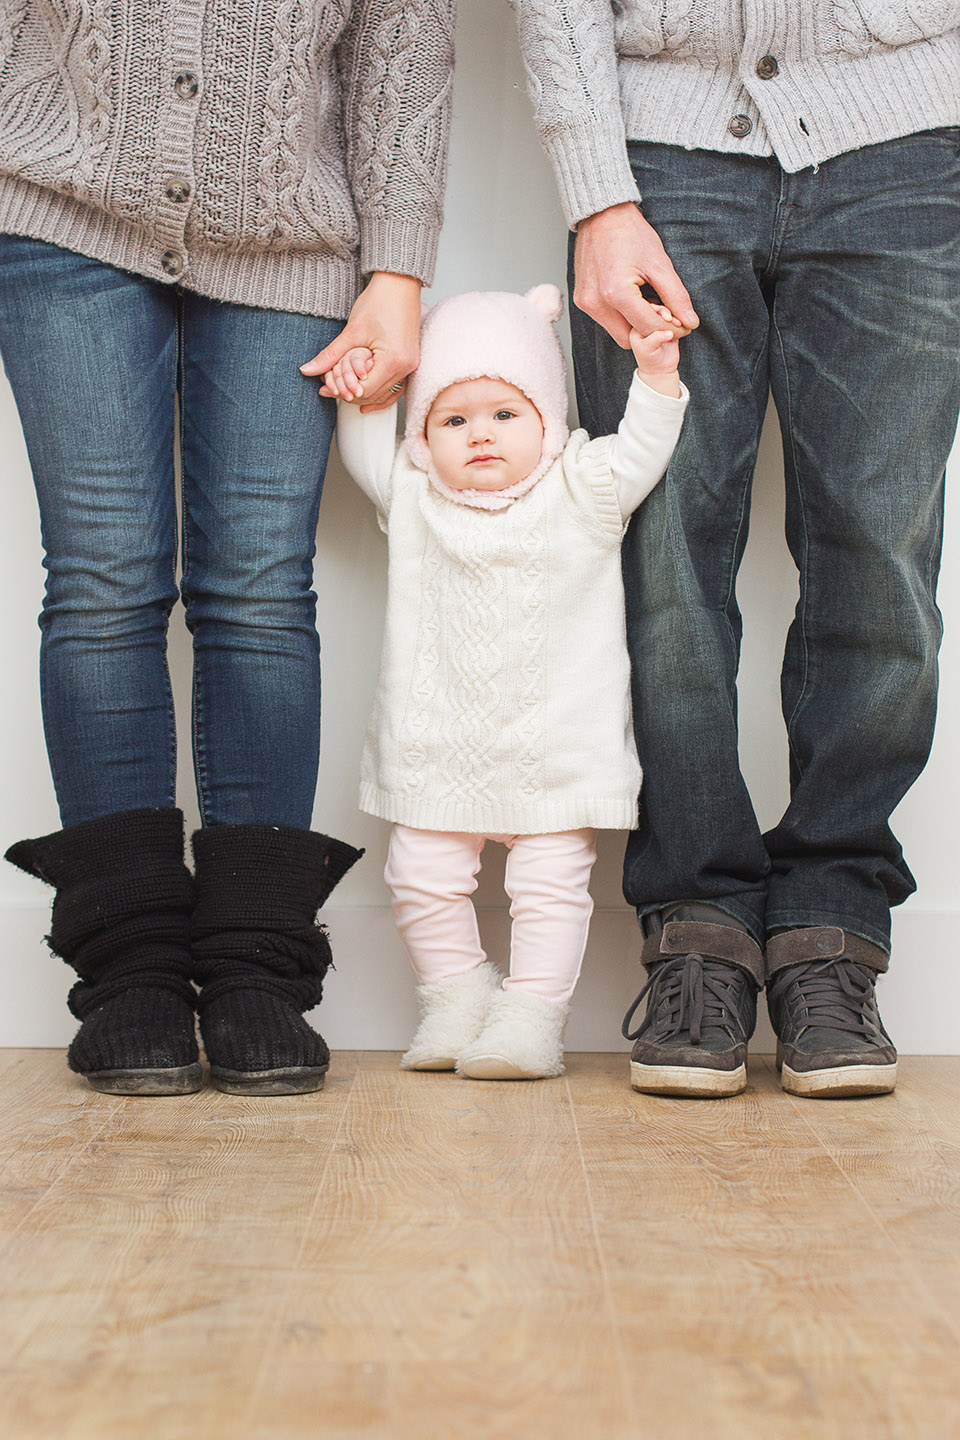 A portrait of a child with her family taken by Frank Myrland Photography